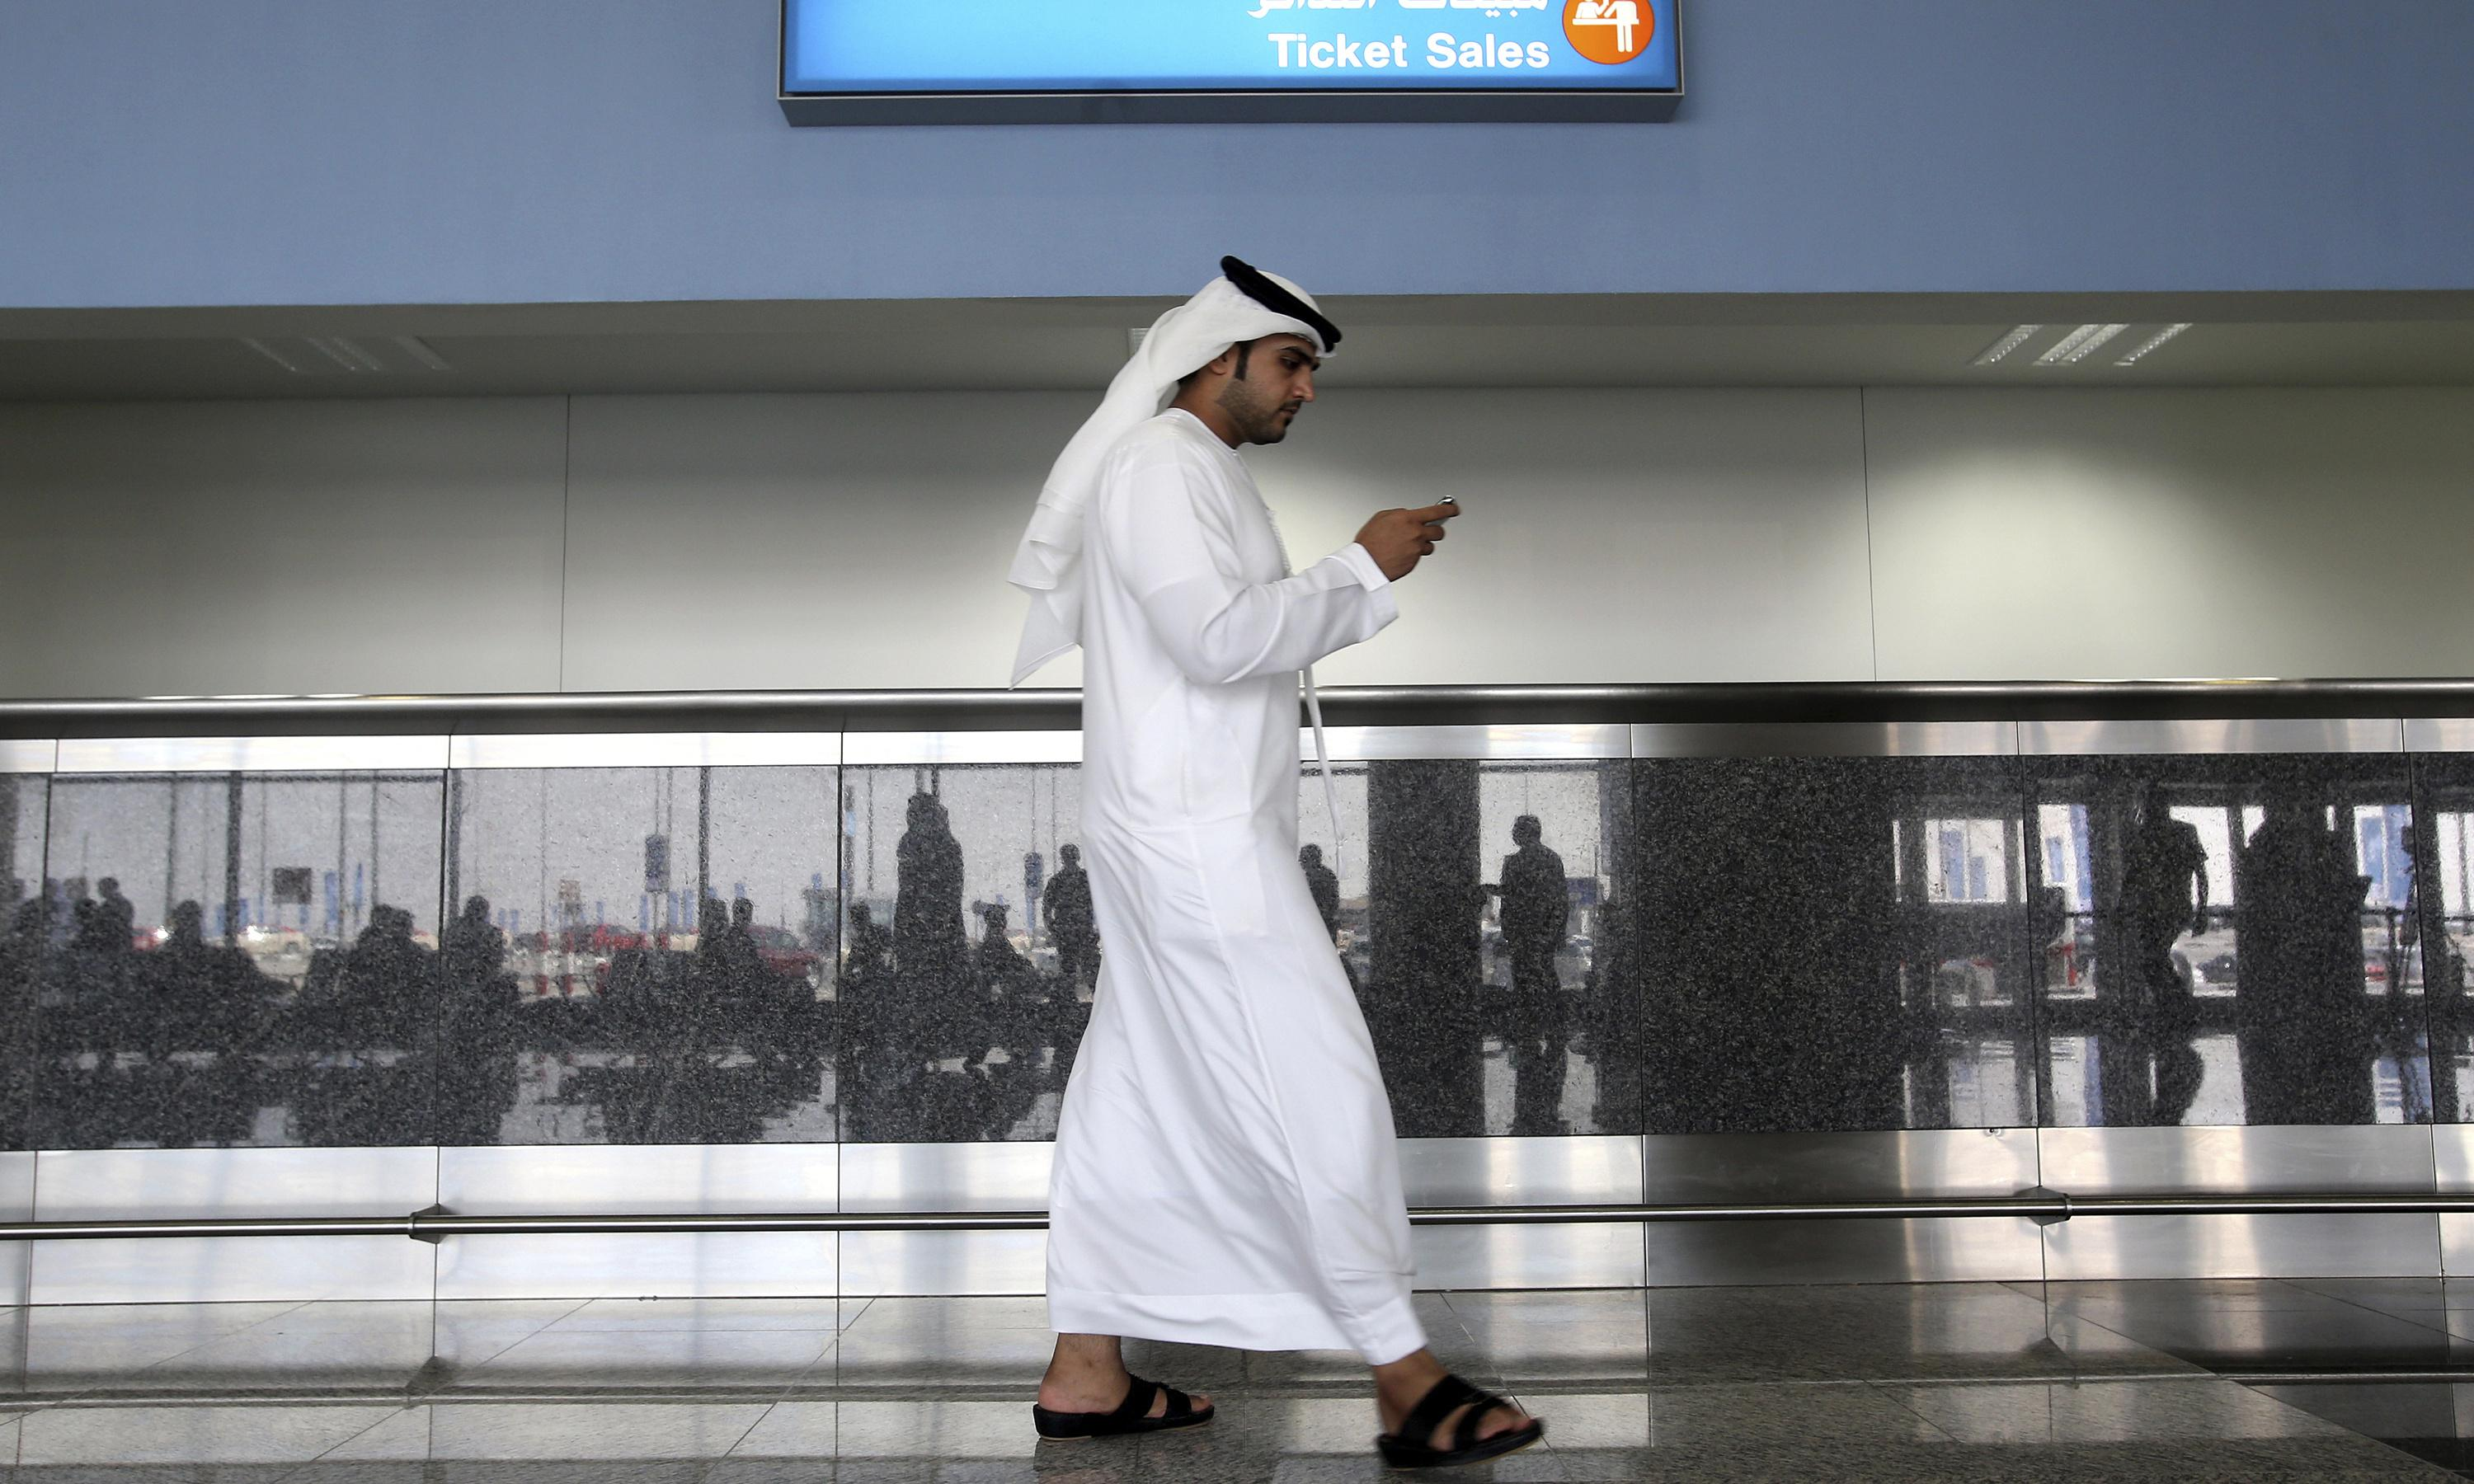 Popular chat app ToTok is actually a spying tool of UAE government – report